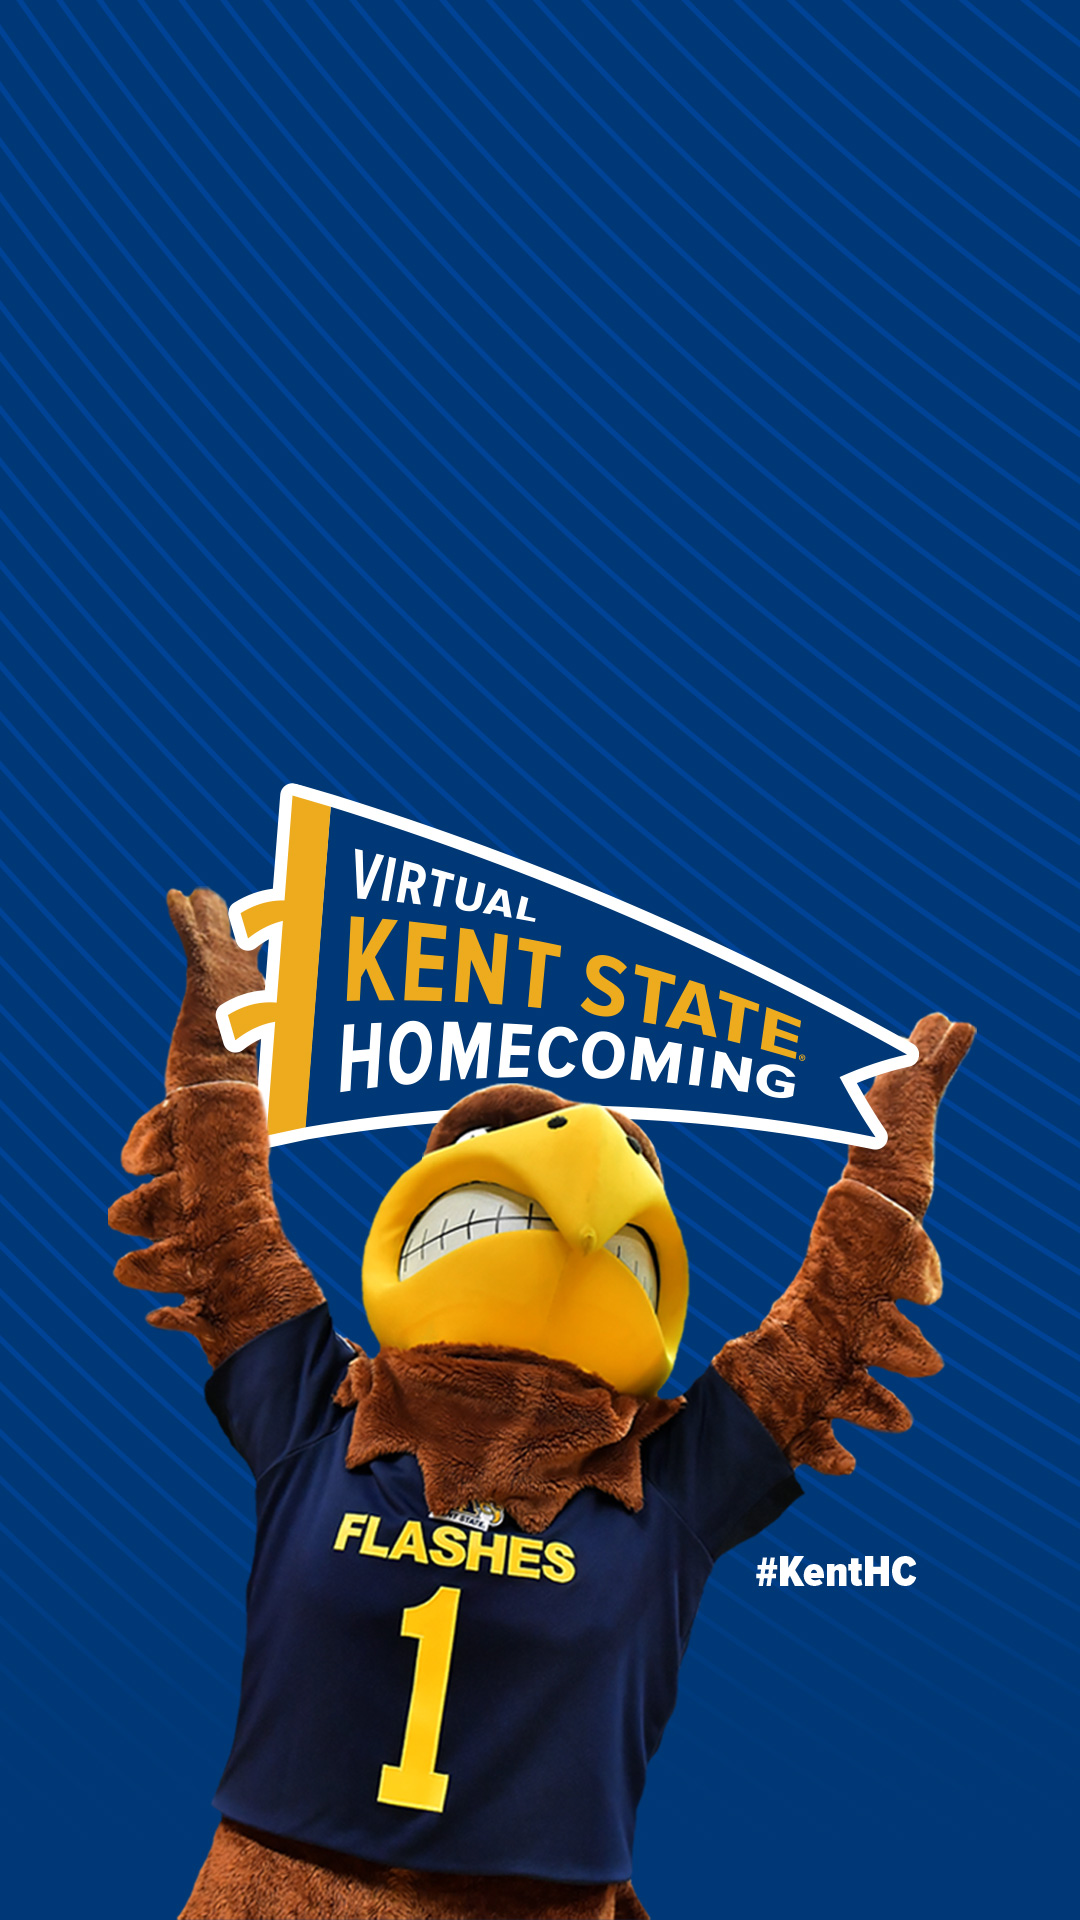 Photo of Flash, holding a pennant flag that says Virtual Kent State Homecoming